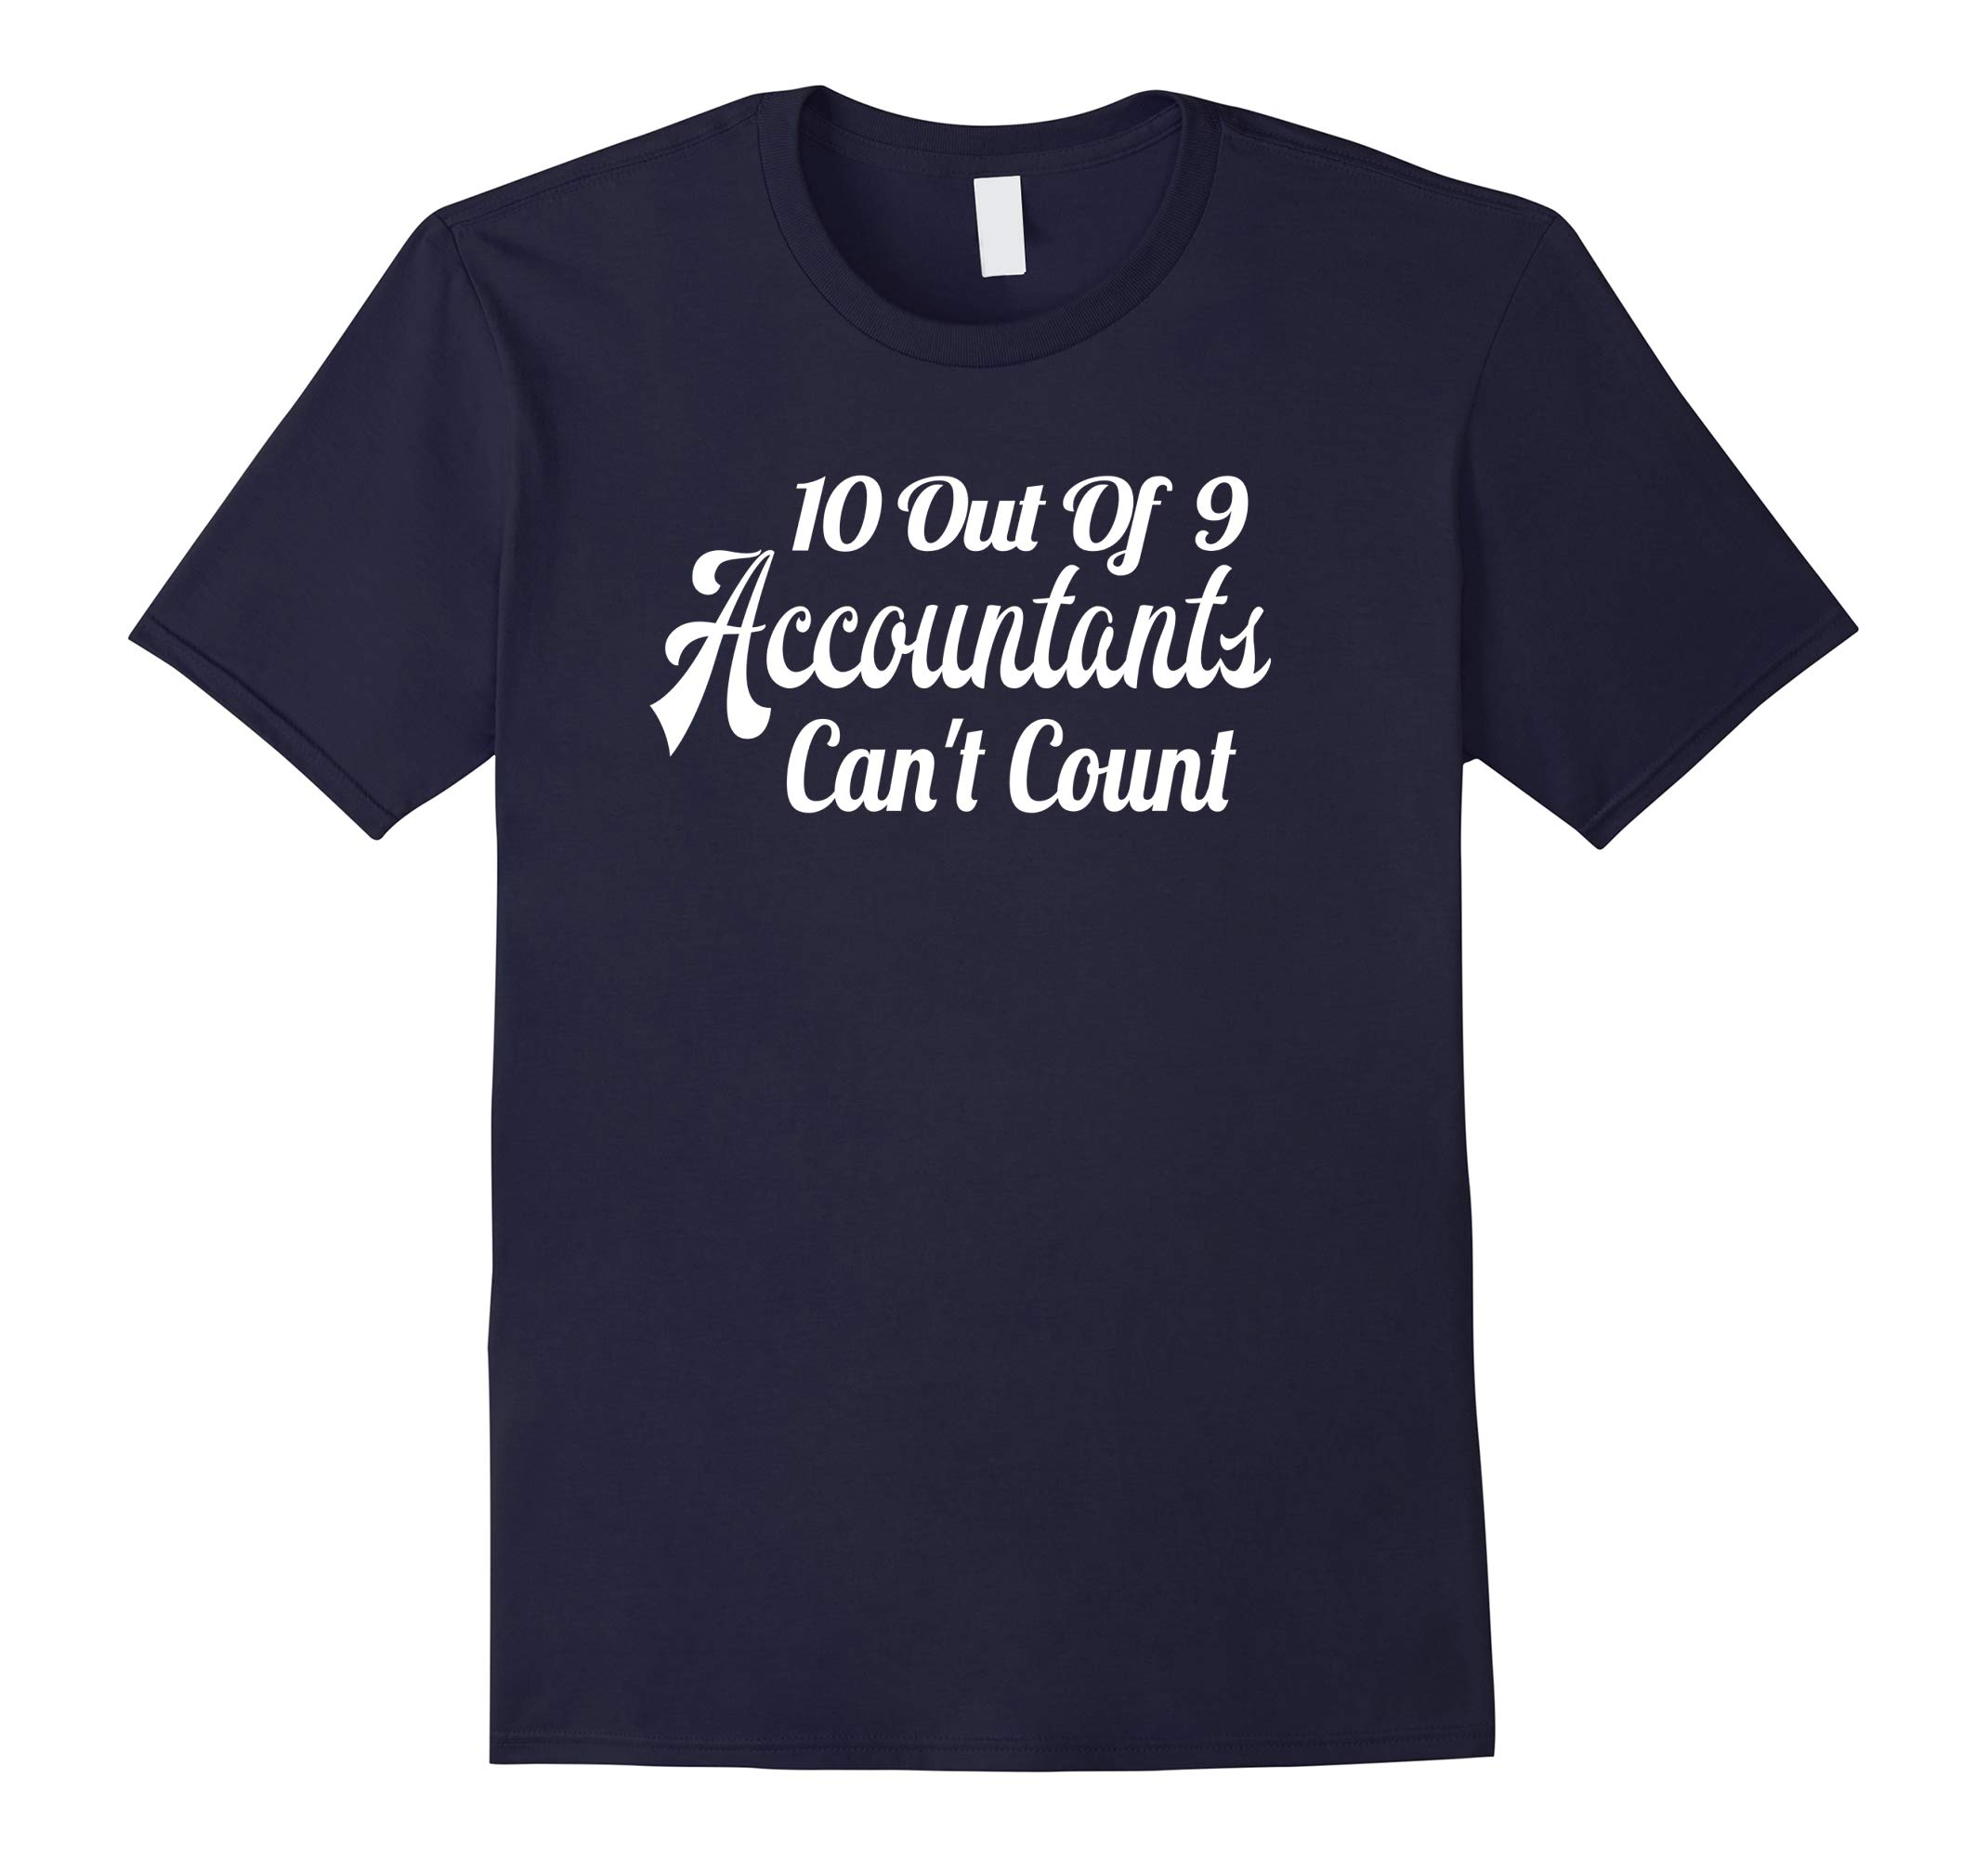 10 out of 9 accountants can't count | Funny CPA Quote Tshirt-RT